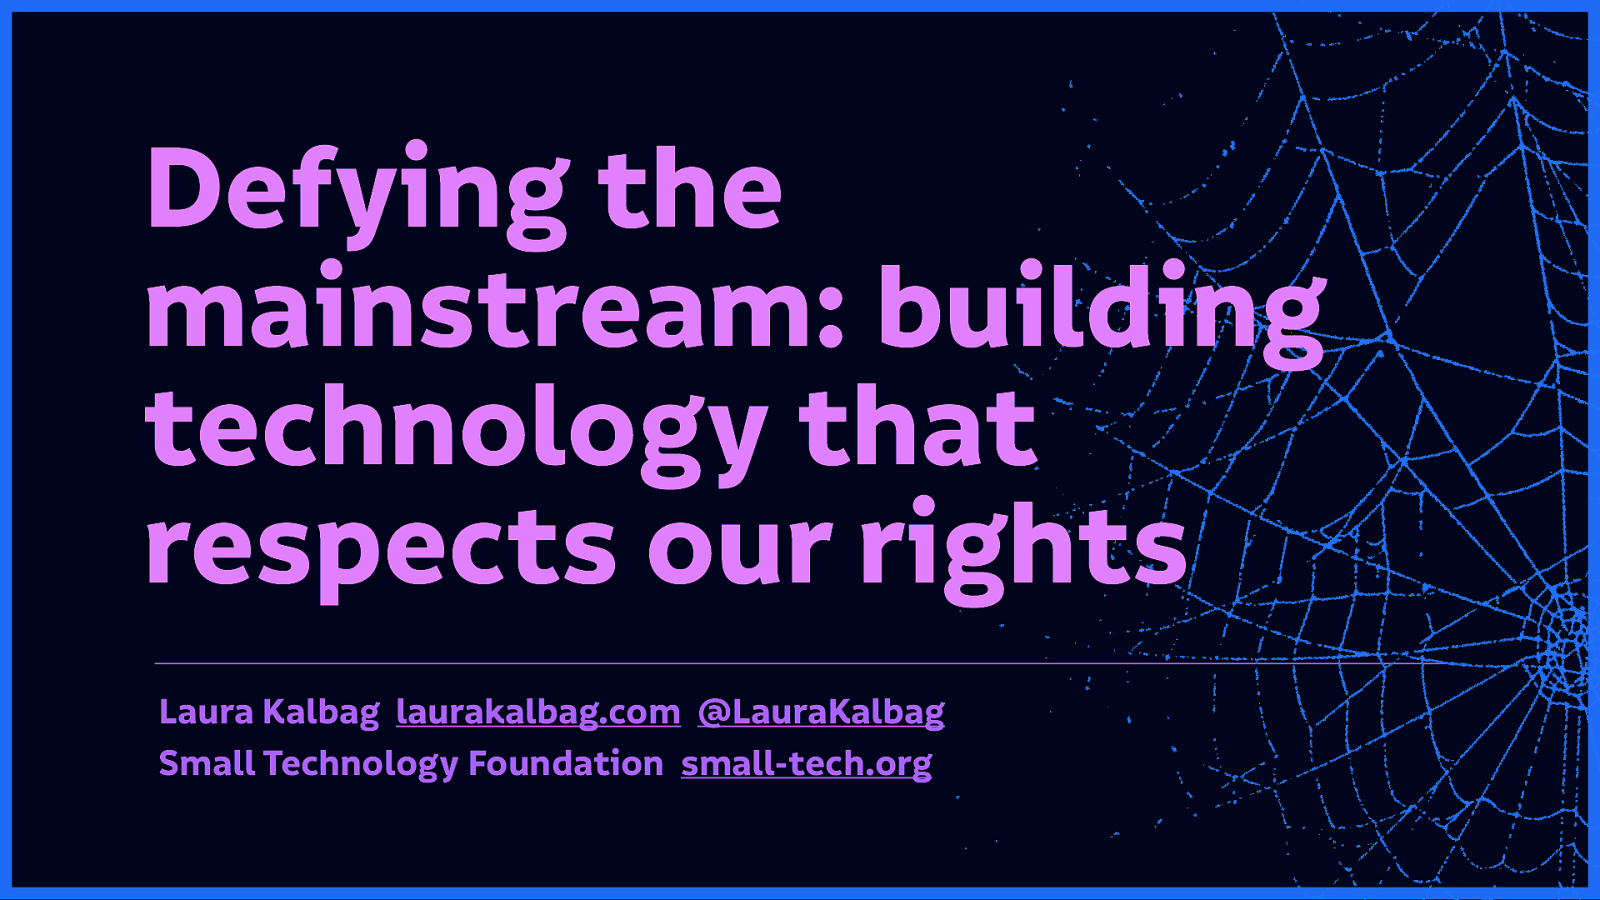 Defying the mainstream: building technology that respects our rights